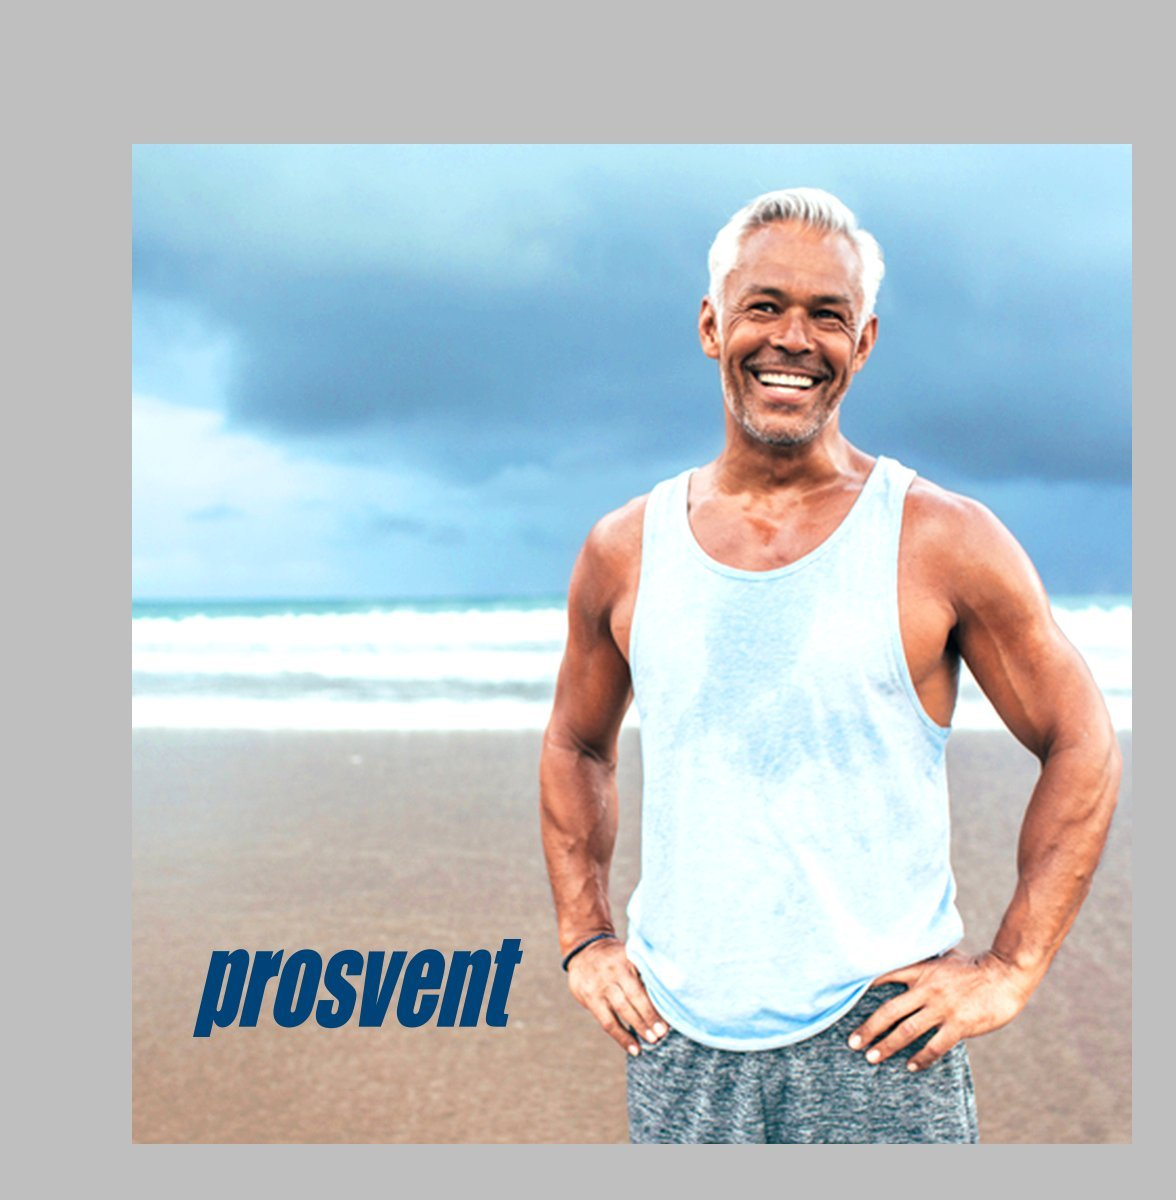 PROSVENT-NATURAL PROSTATE HEALTH SUPPLEMENT -Clinically Tested Ingredients- Reduce Urgency & Frequency. Improve Flow, Sleep, Health & Quality Of Life. OVER 180 MILLION DOSES SOLD! –3 Month Supply by Prosvent (Image #8)